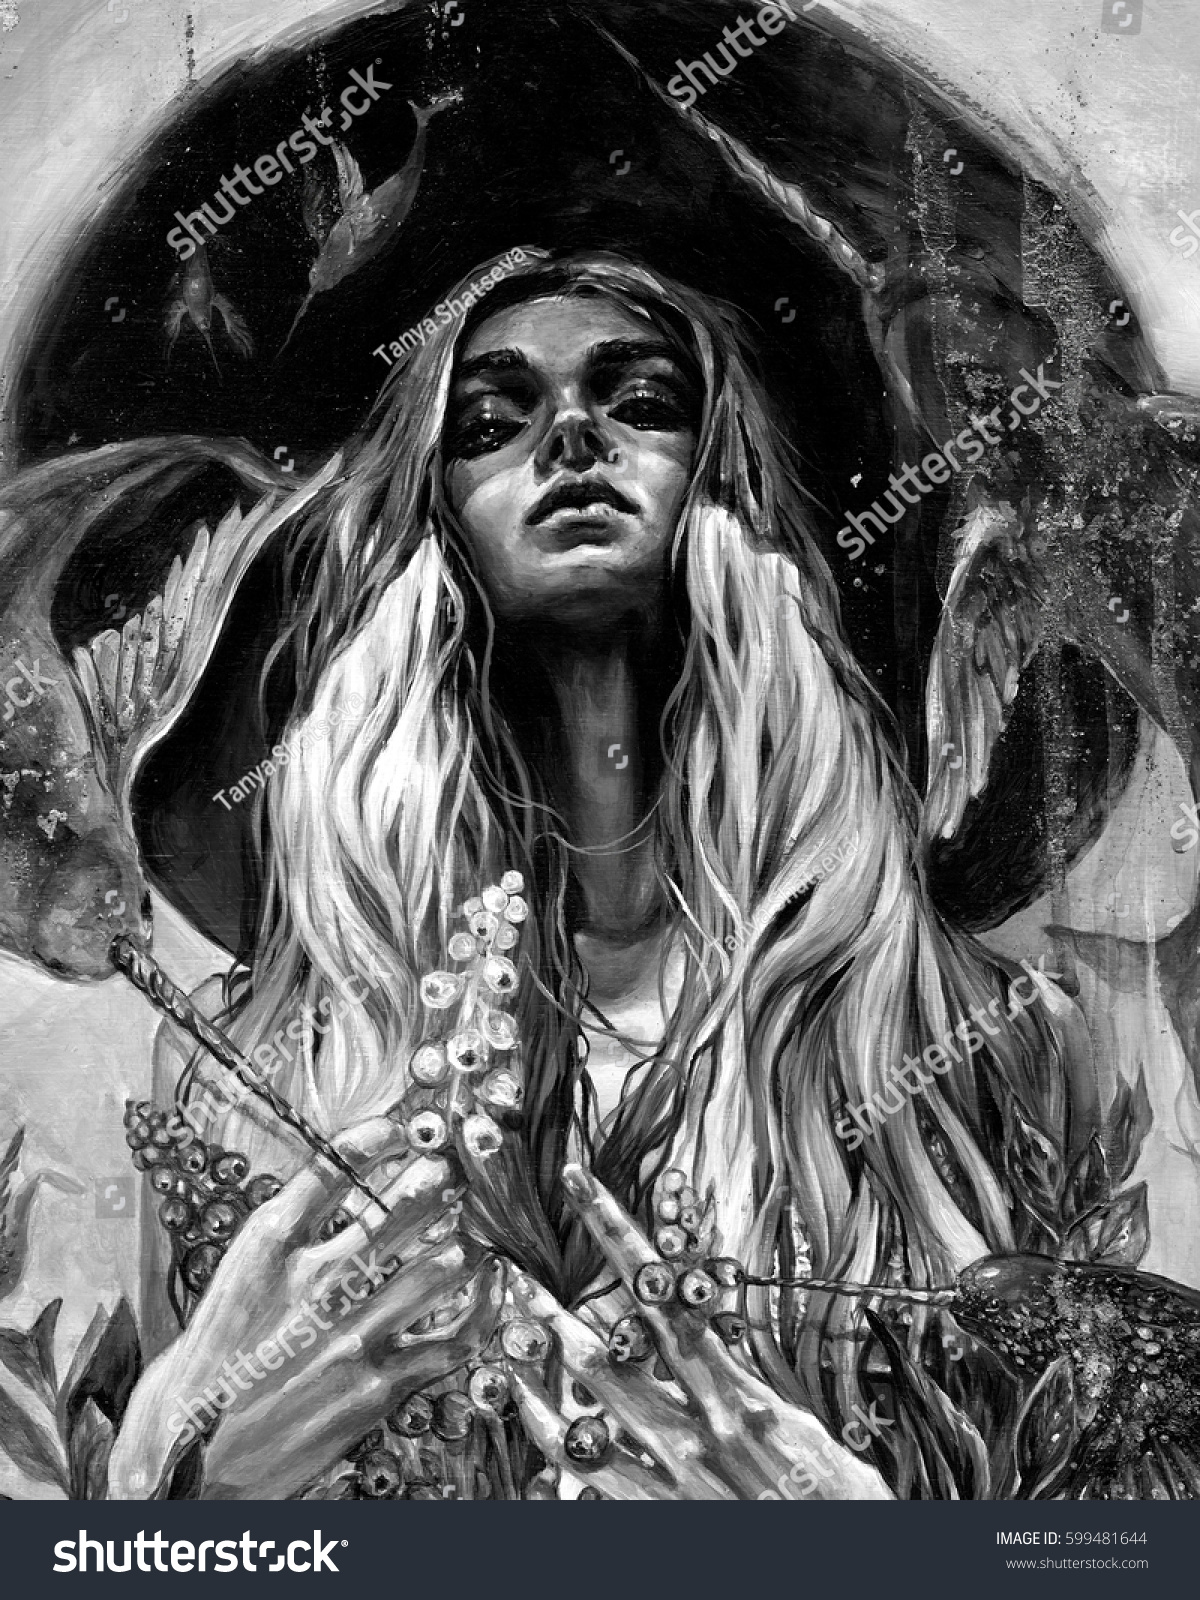 Black and white surreal psychedelic acrylic portrait of a pretty woman with long hair in black